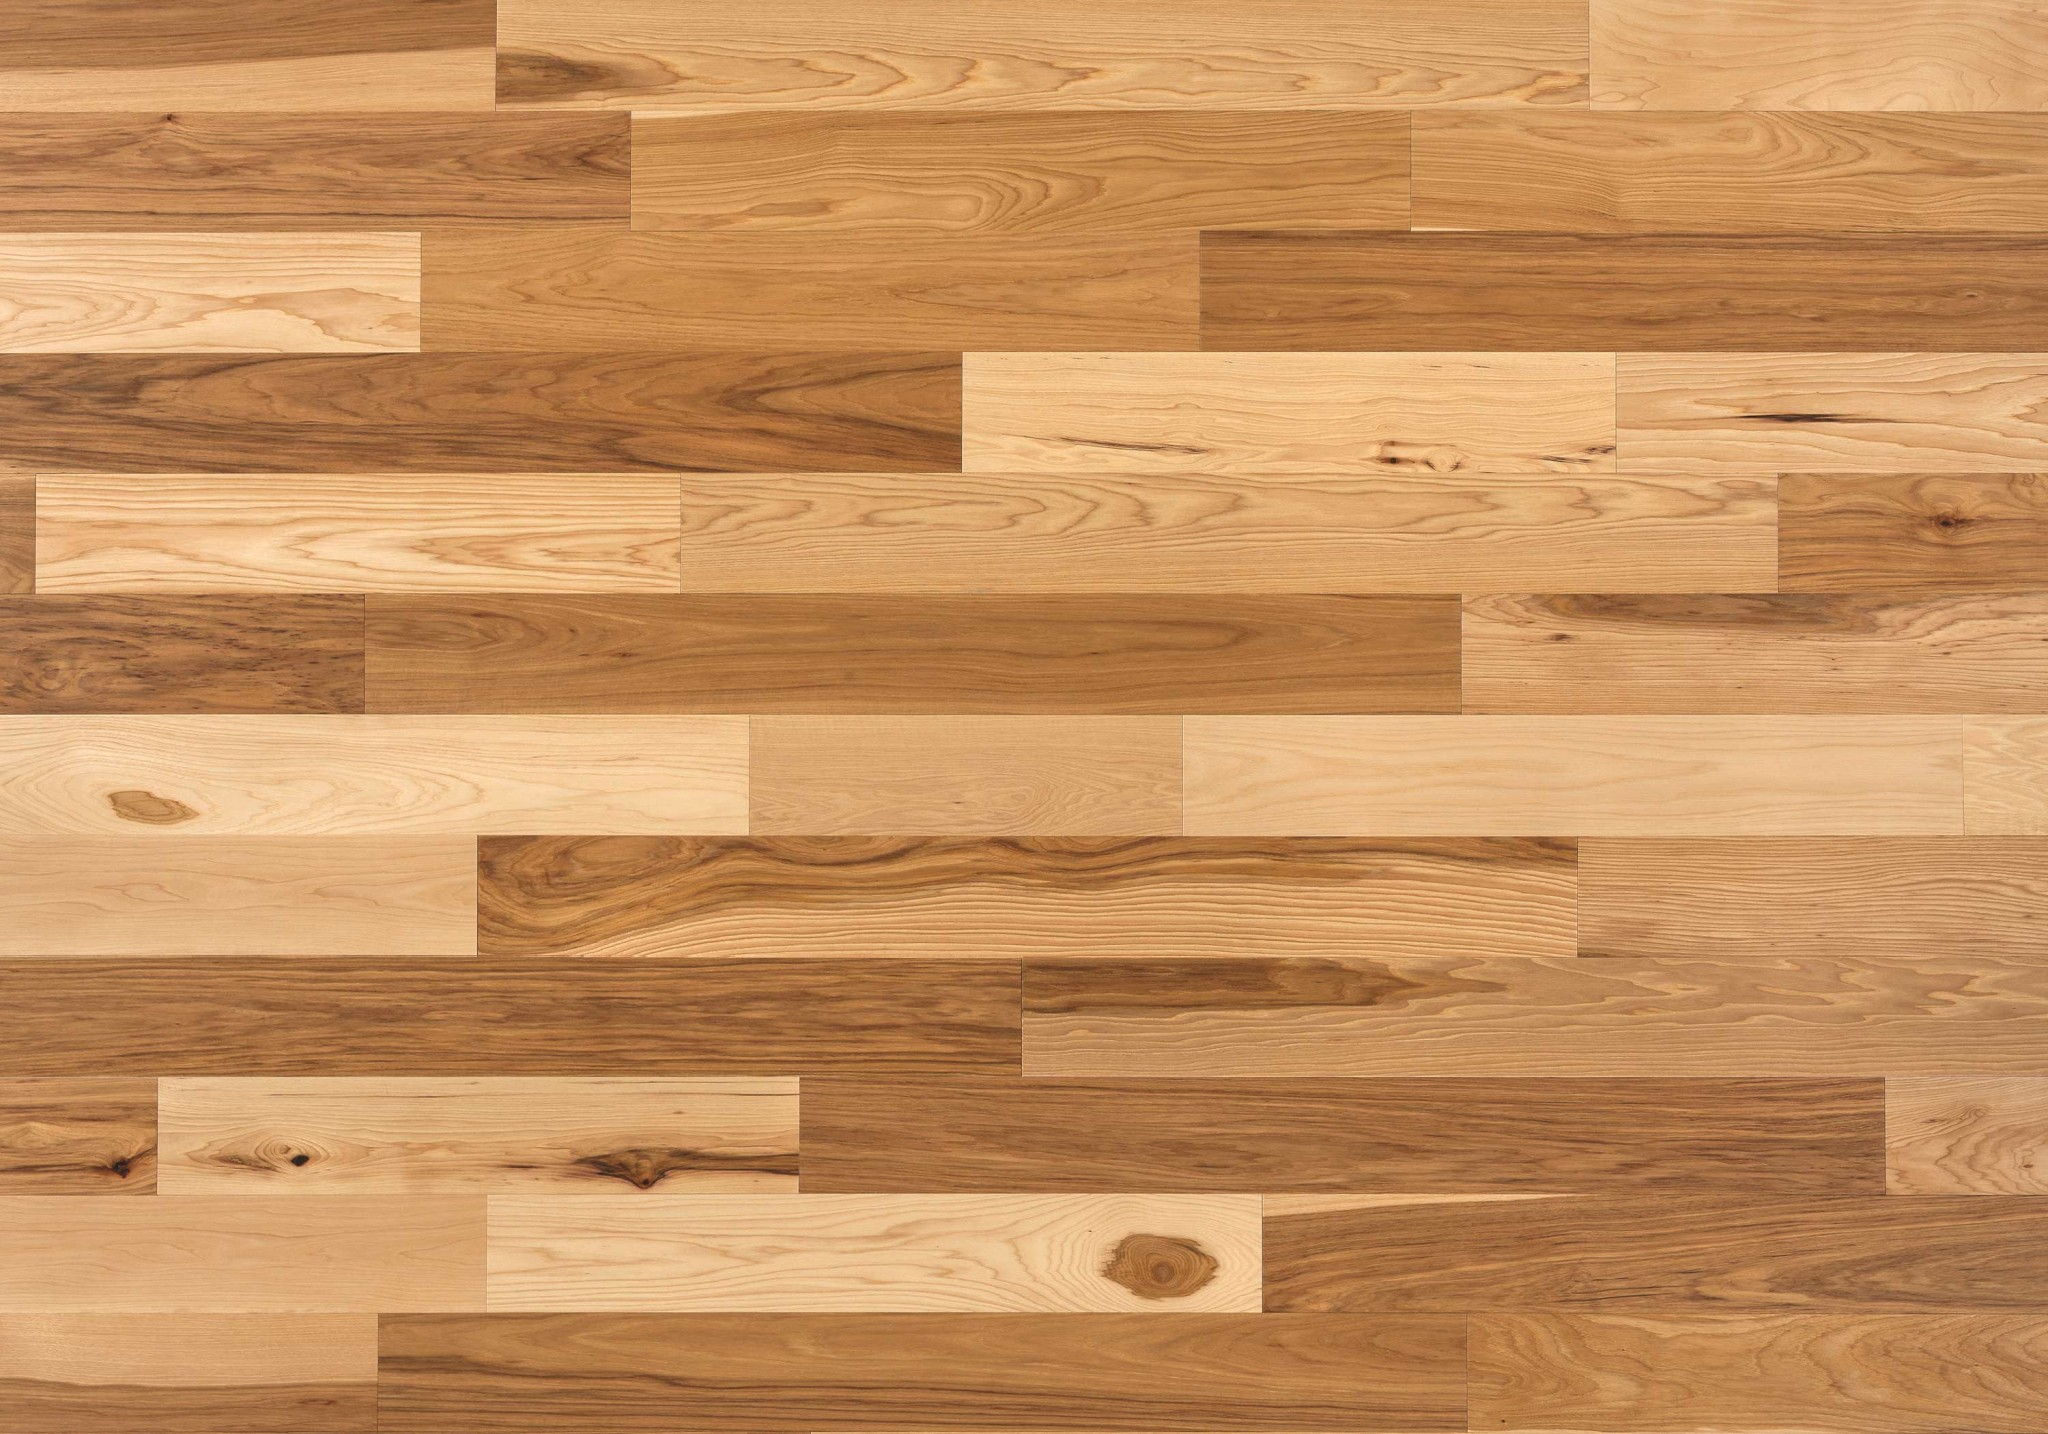 Laminate flooring voc wood floors for Hardwood flooring zero voc